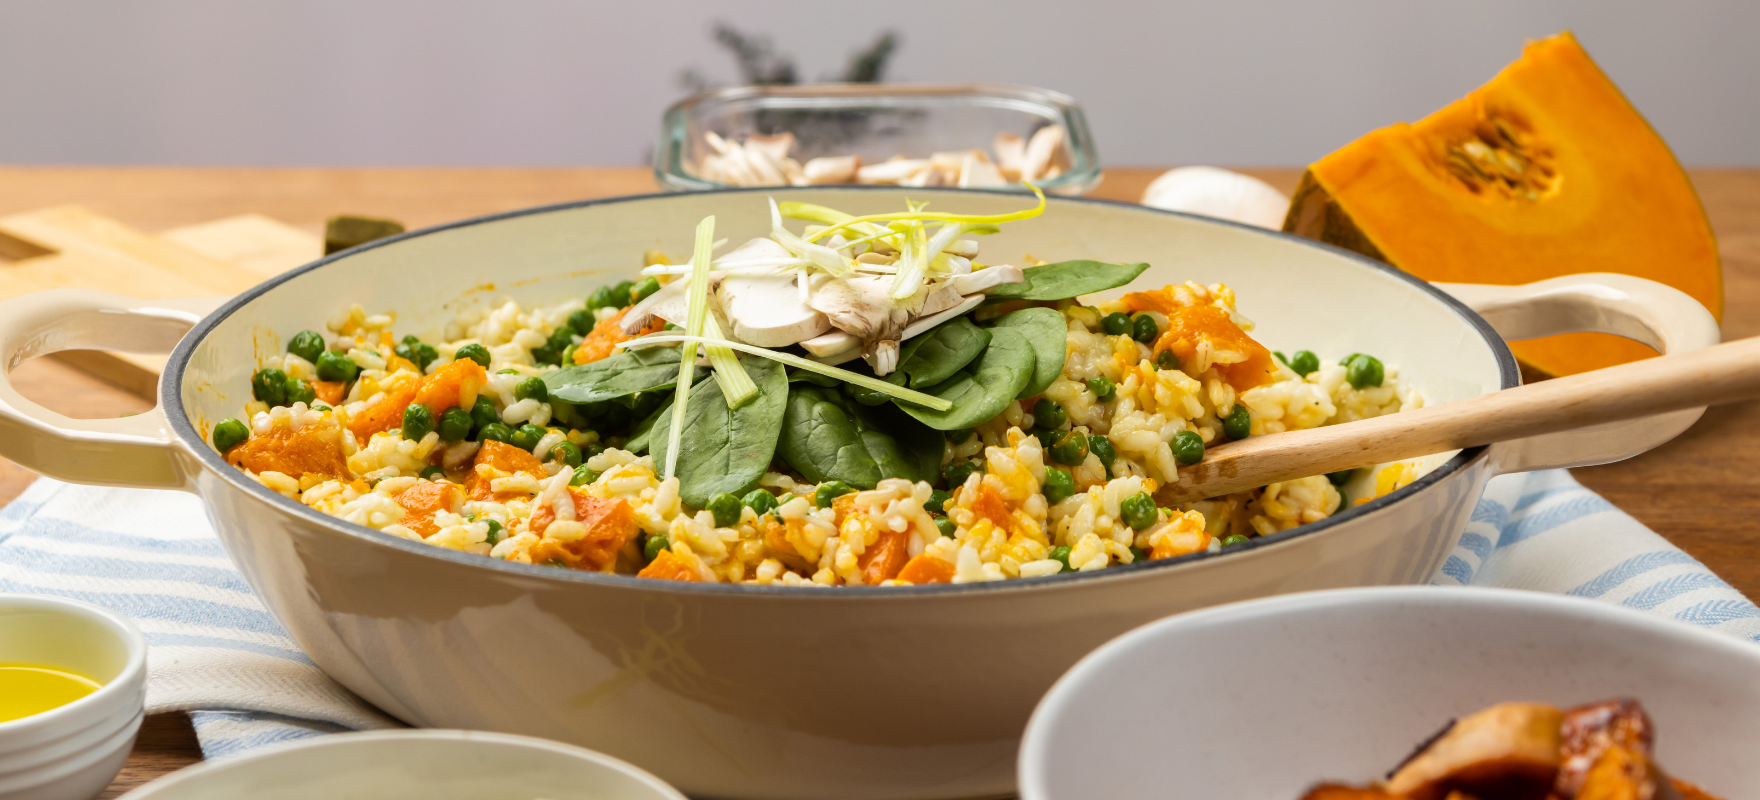 Oven baked risotto image 1